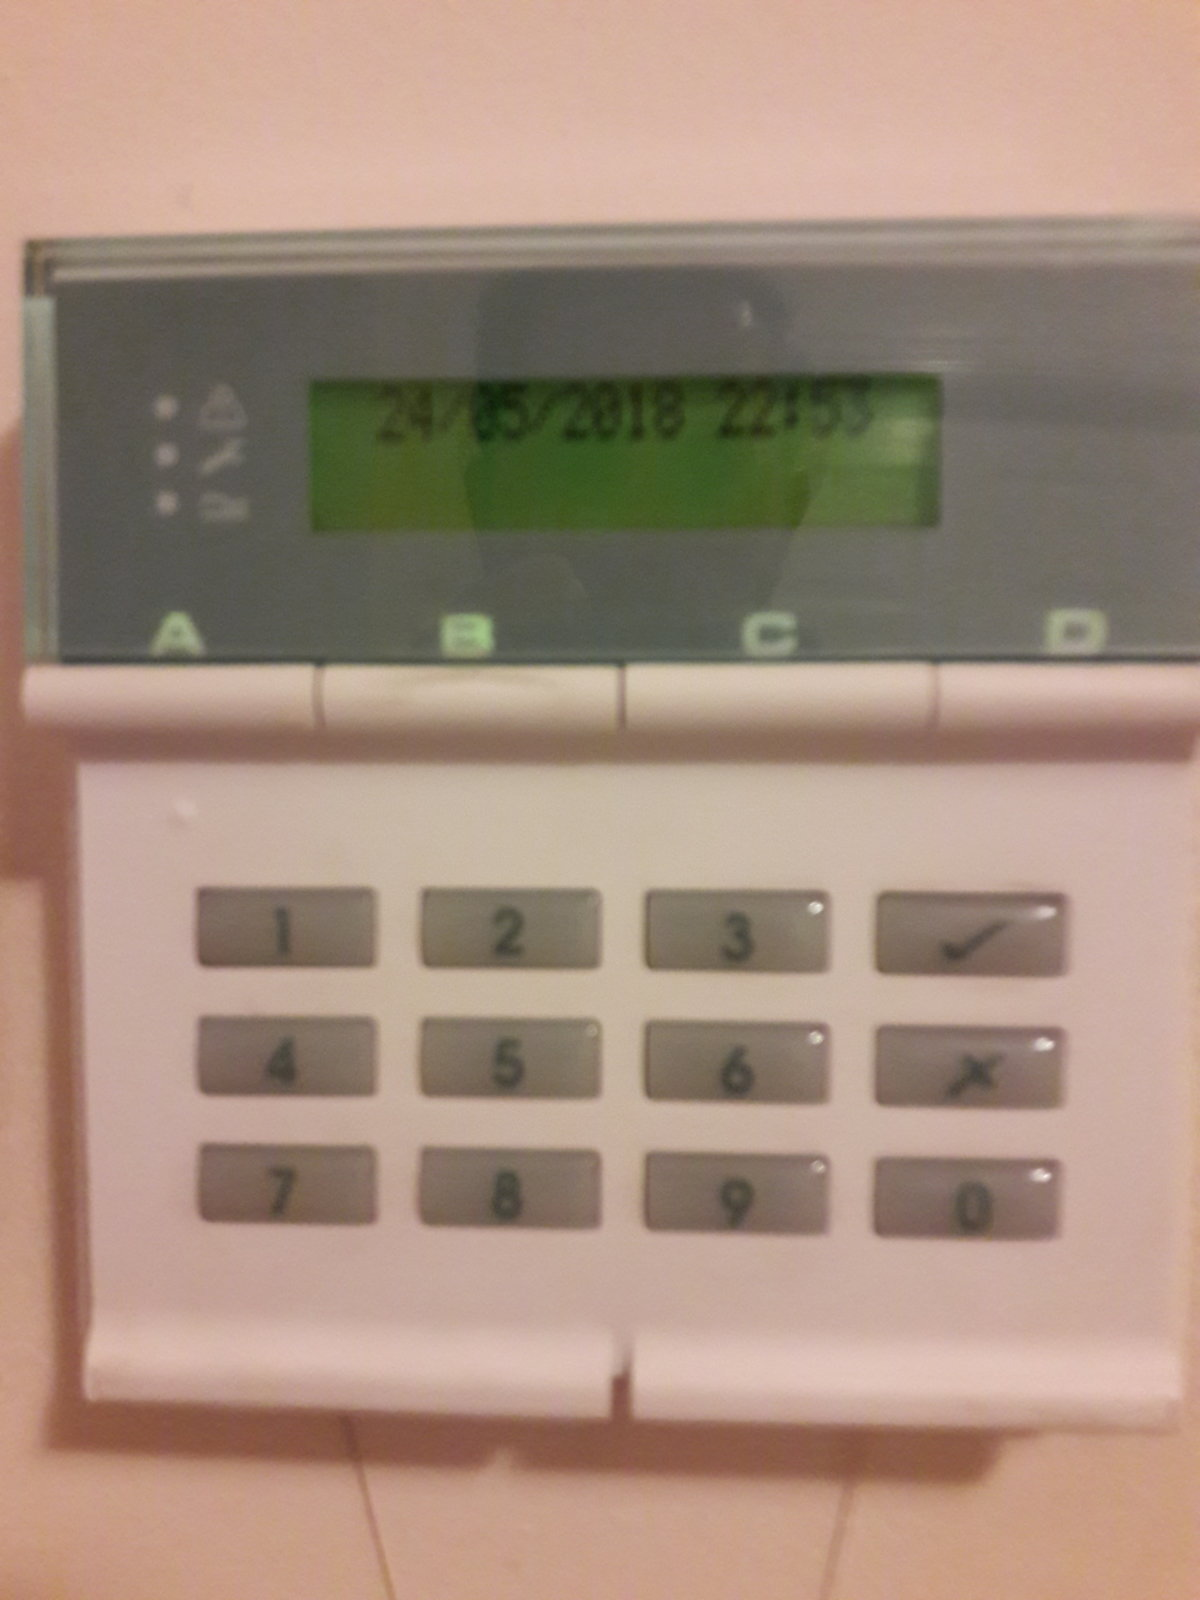 Back Up Alarm >> Scantronic 9651 low battery | DIYnot Forums